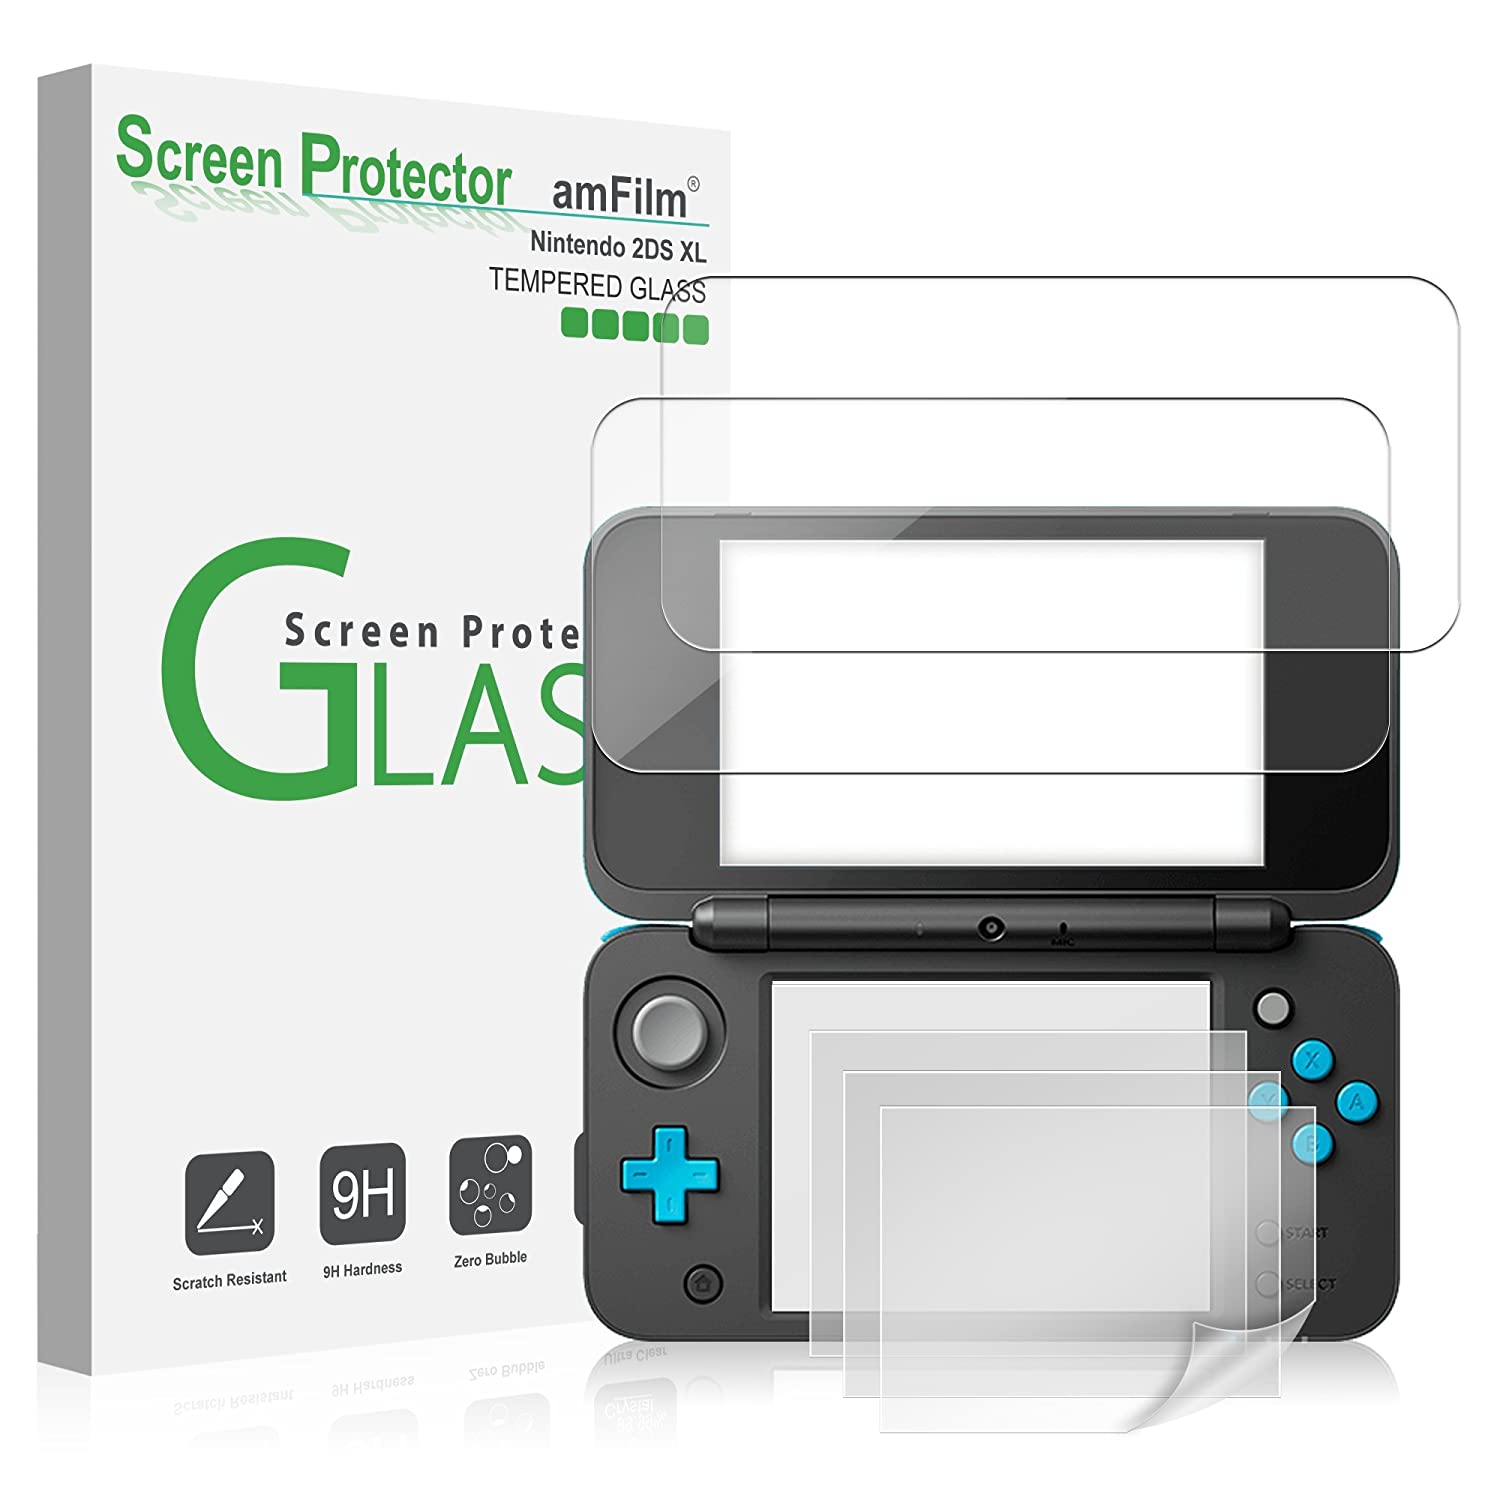 Amazon.com: Nintendo 2DS XL Screen Protector Pack, amFilm [2 ...